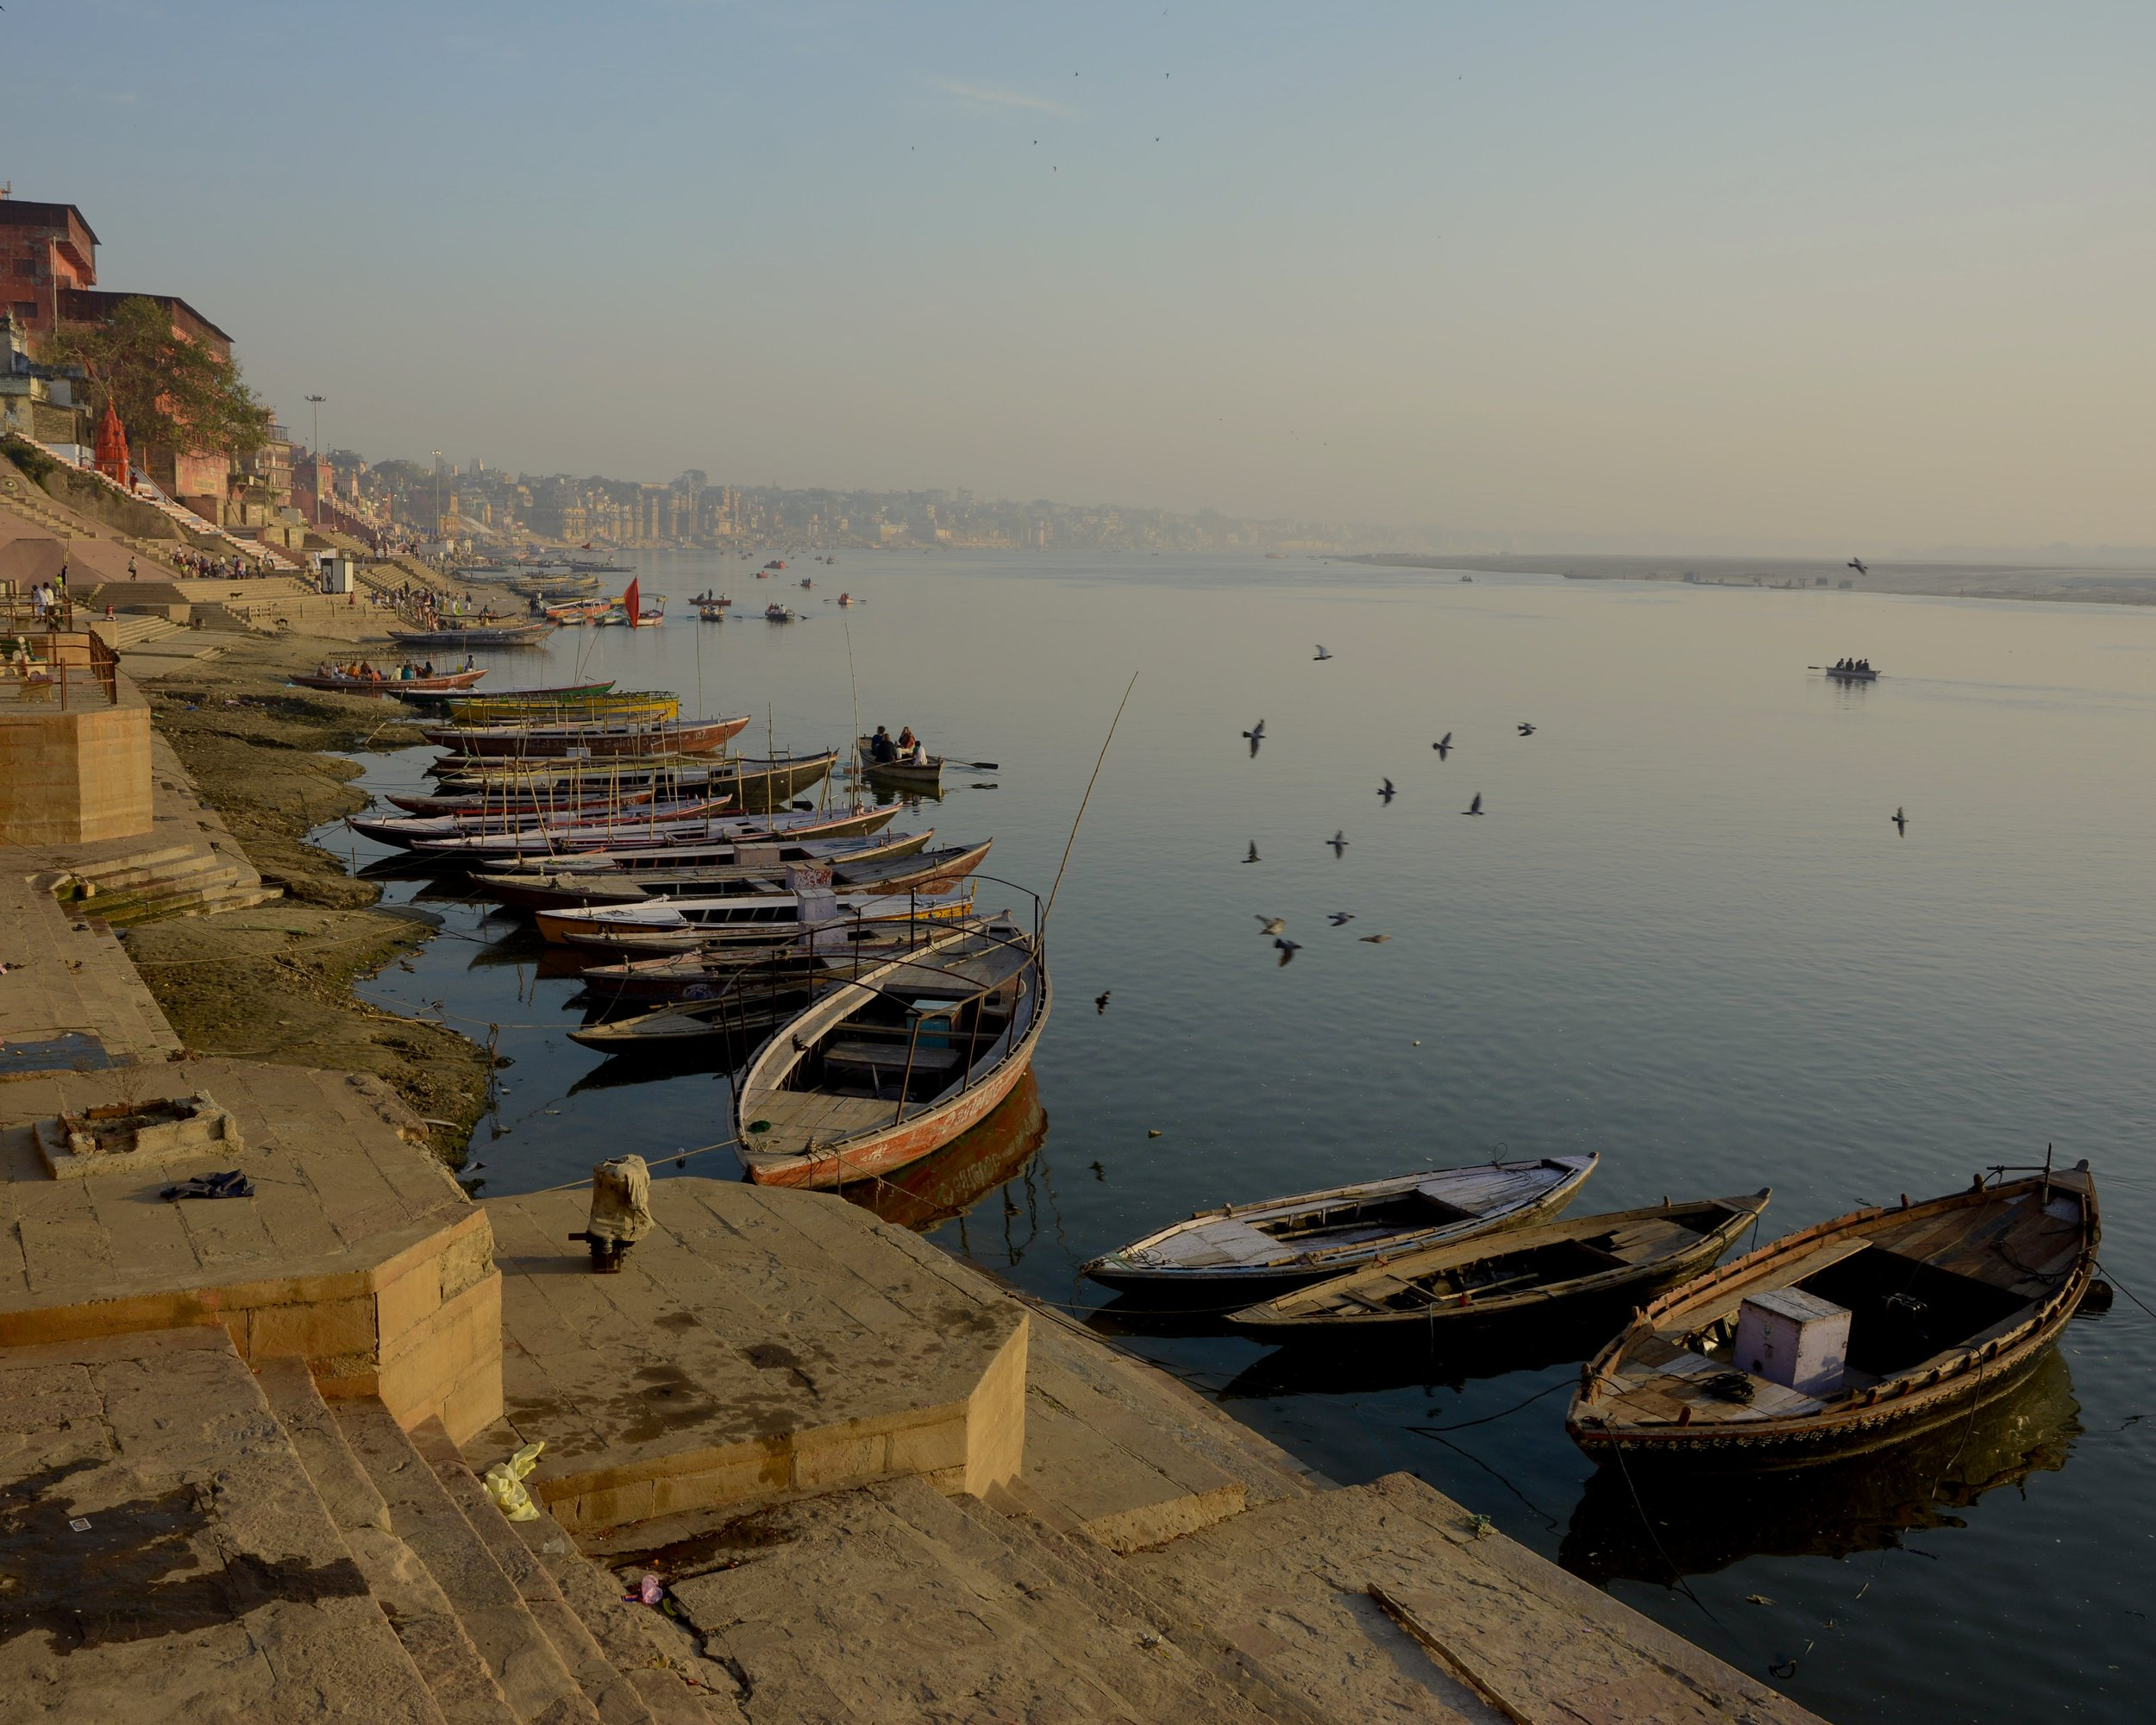 The boats of Varanasi.